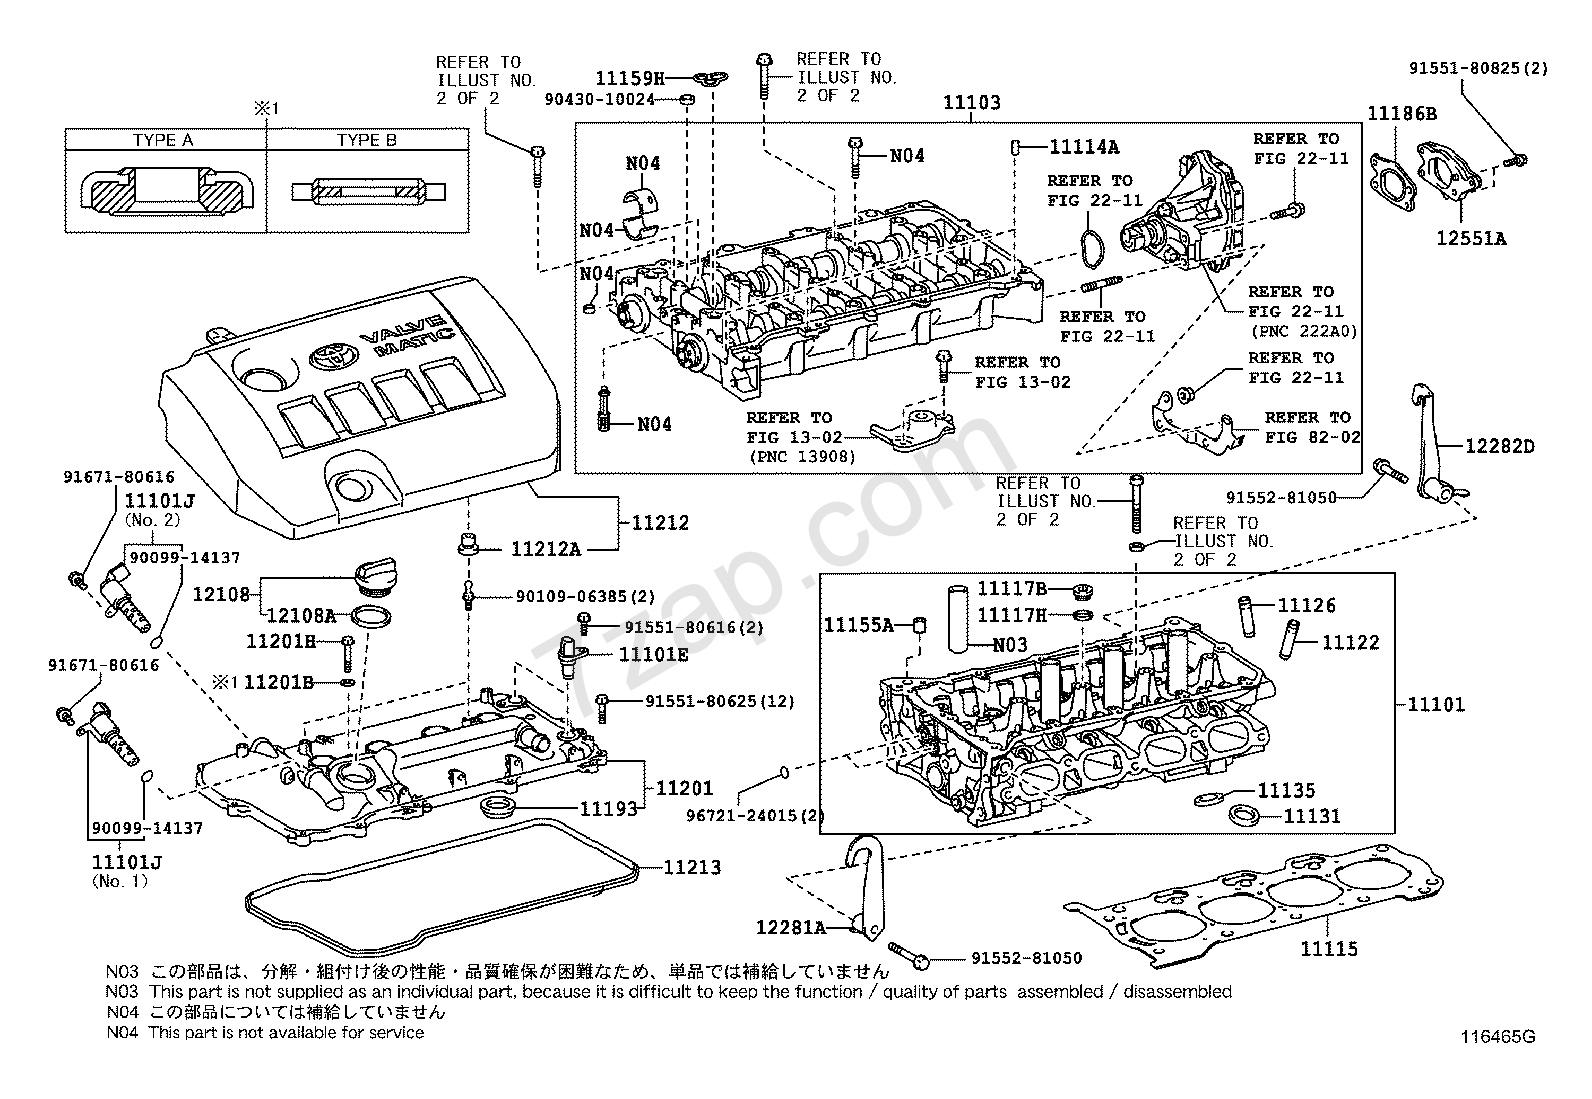 cylinder head[ illust no. 1 of 2(1006- ) ] toyota wish ... toyota wish fuse box